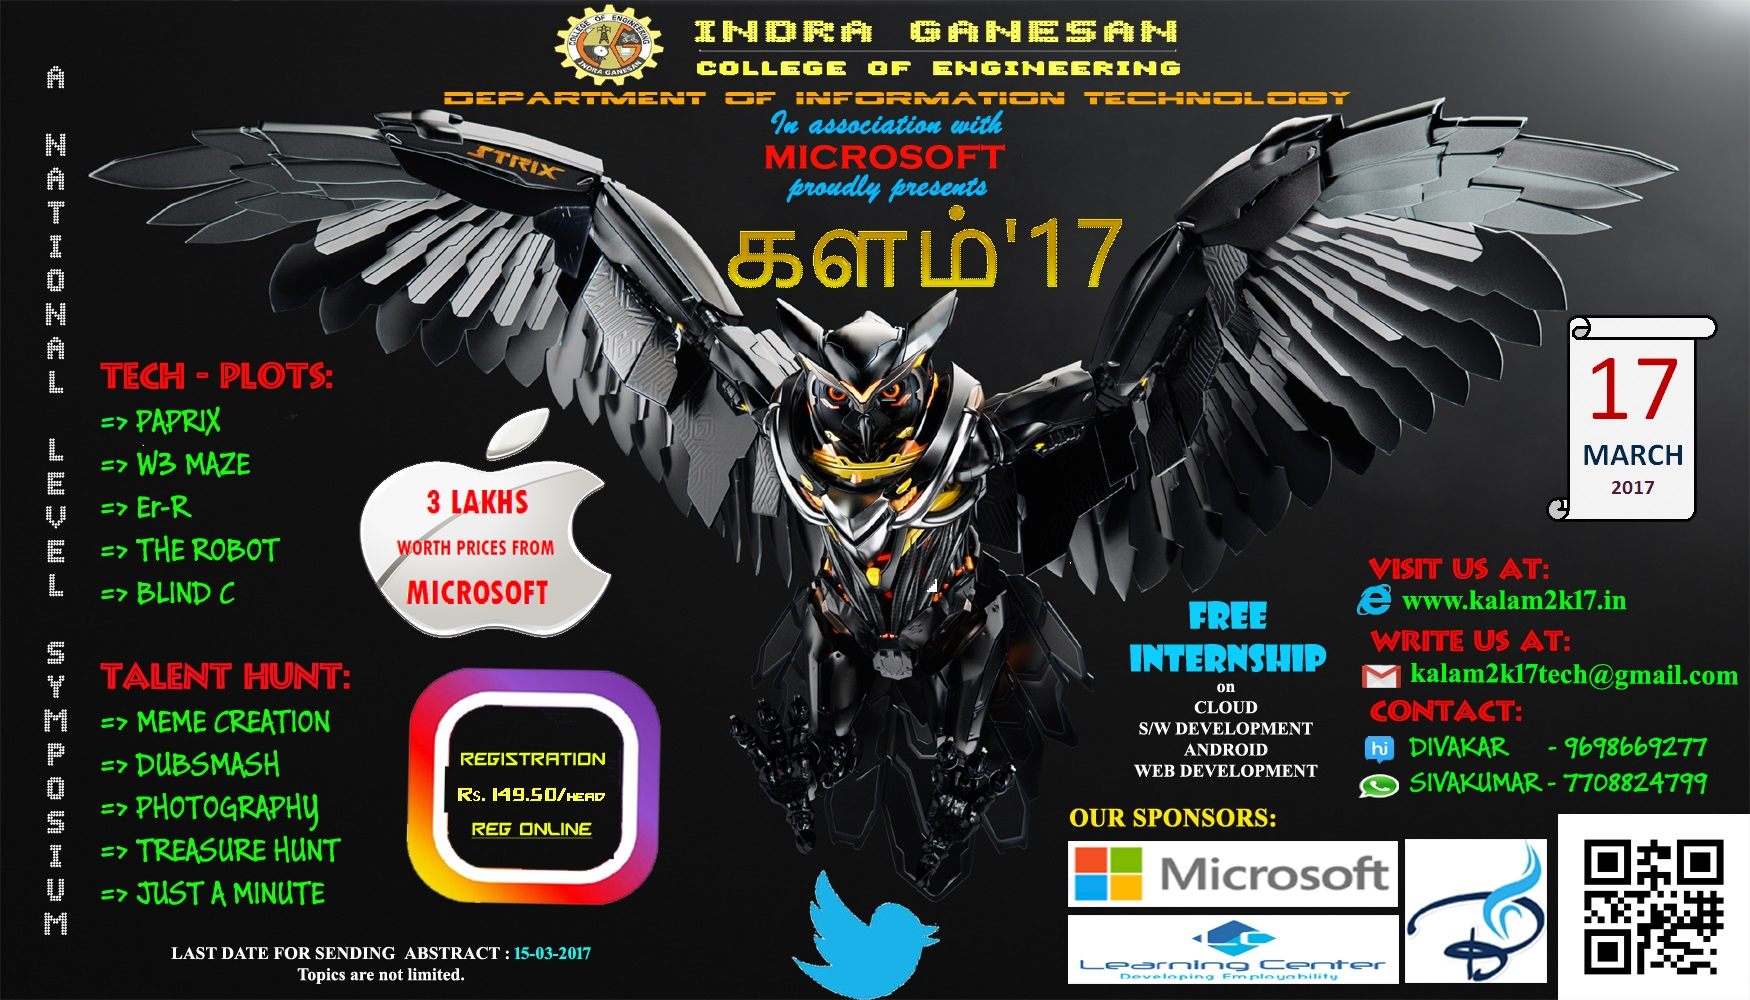 Poster design for symposium - Category Technical Symposium Organiser Indra Ganesan College Of Engineering Location Tiruchirappalli Tamil Nadu Event Dates 17th March 2017